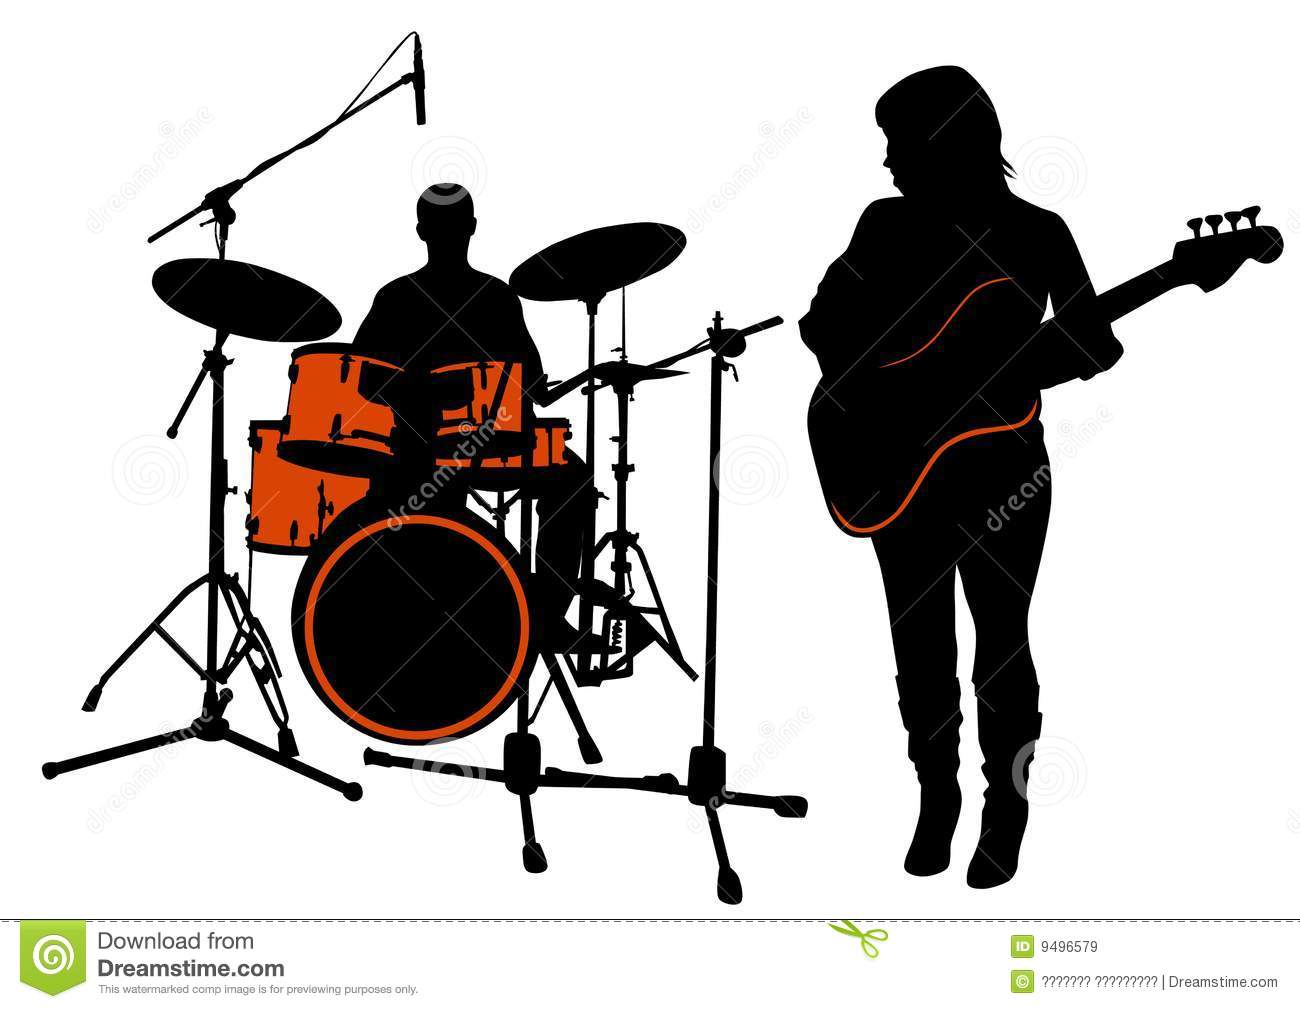 Bass and drums stock vector. Image of concert, women, play ...